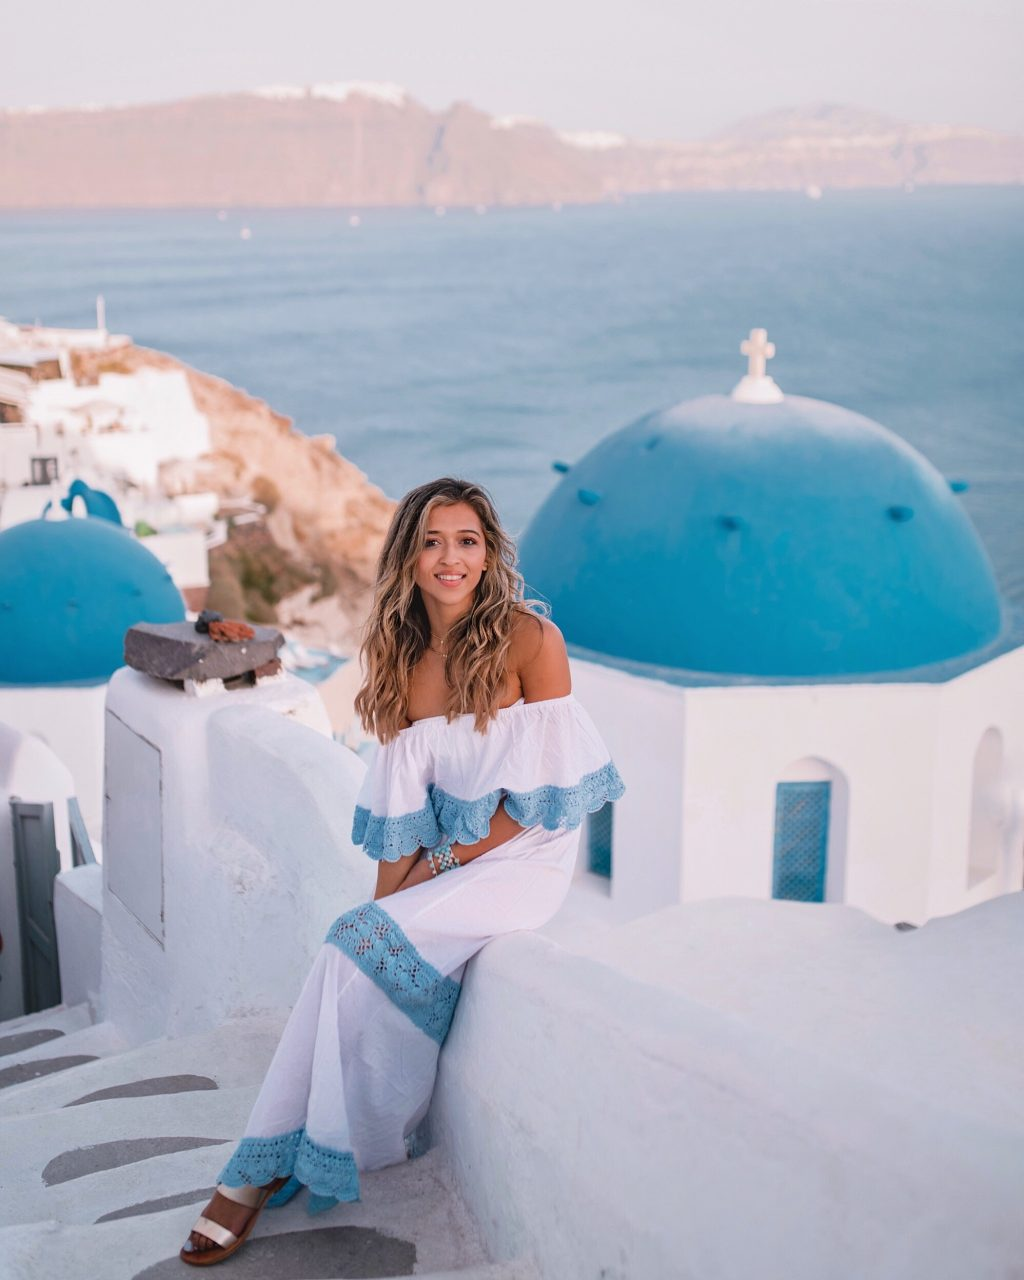 Magical Places To Stay In Europe: Greece : Magical Sunset In Oia, Santorini